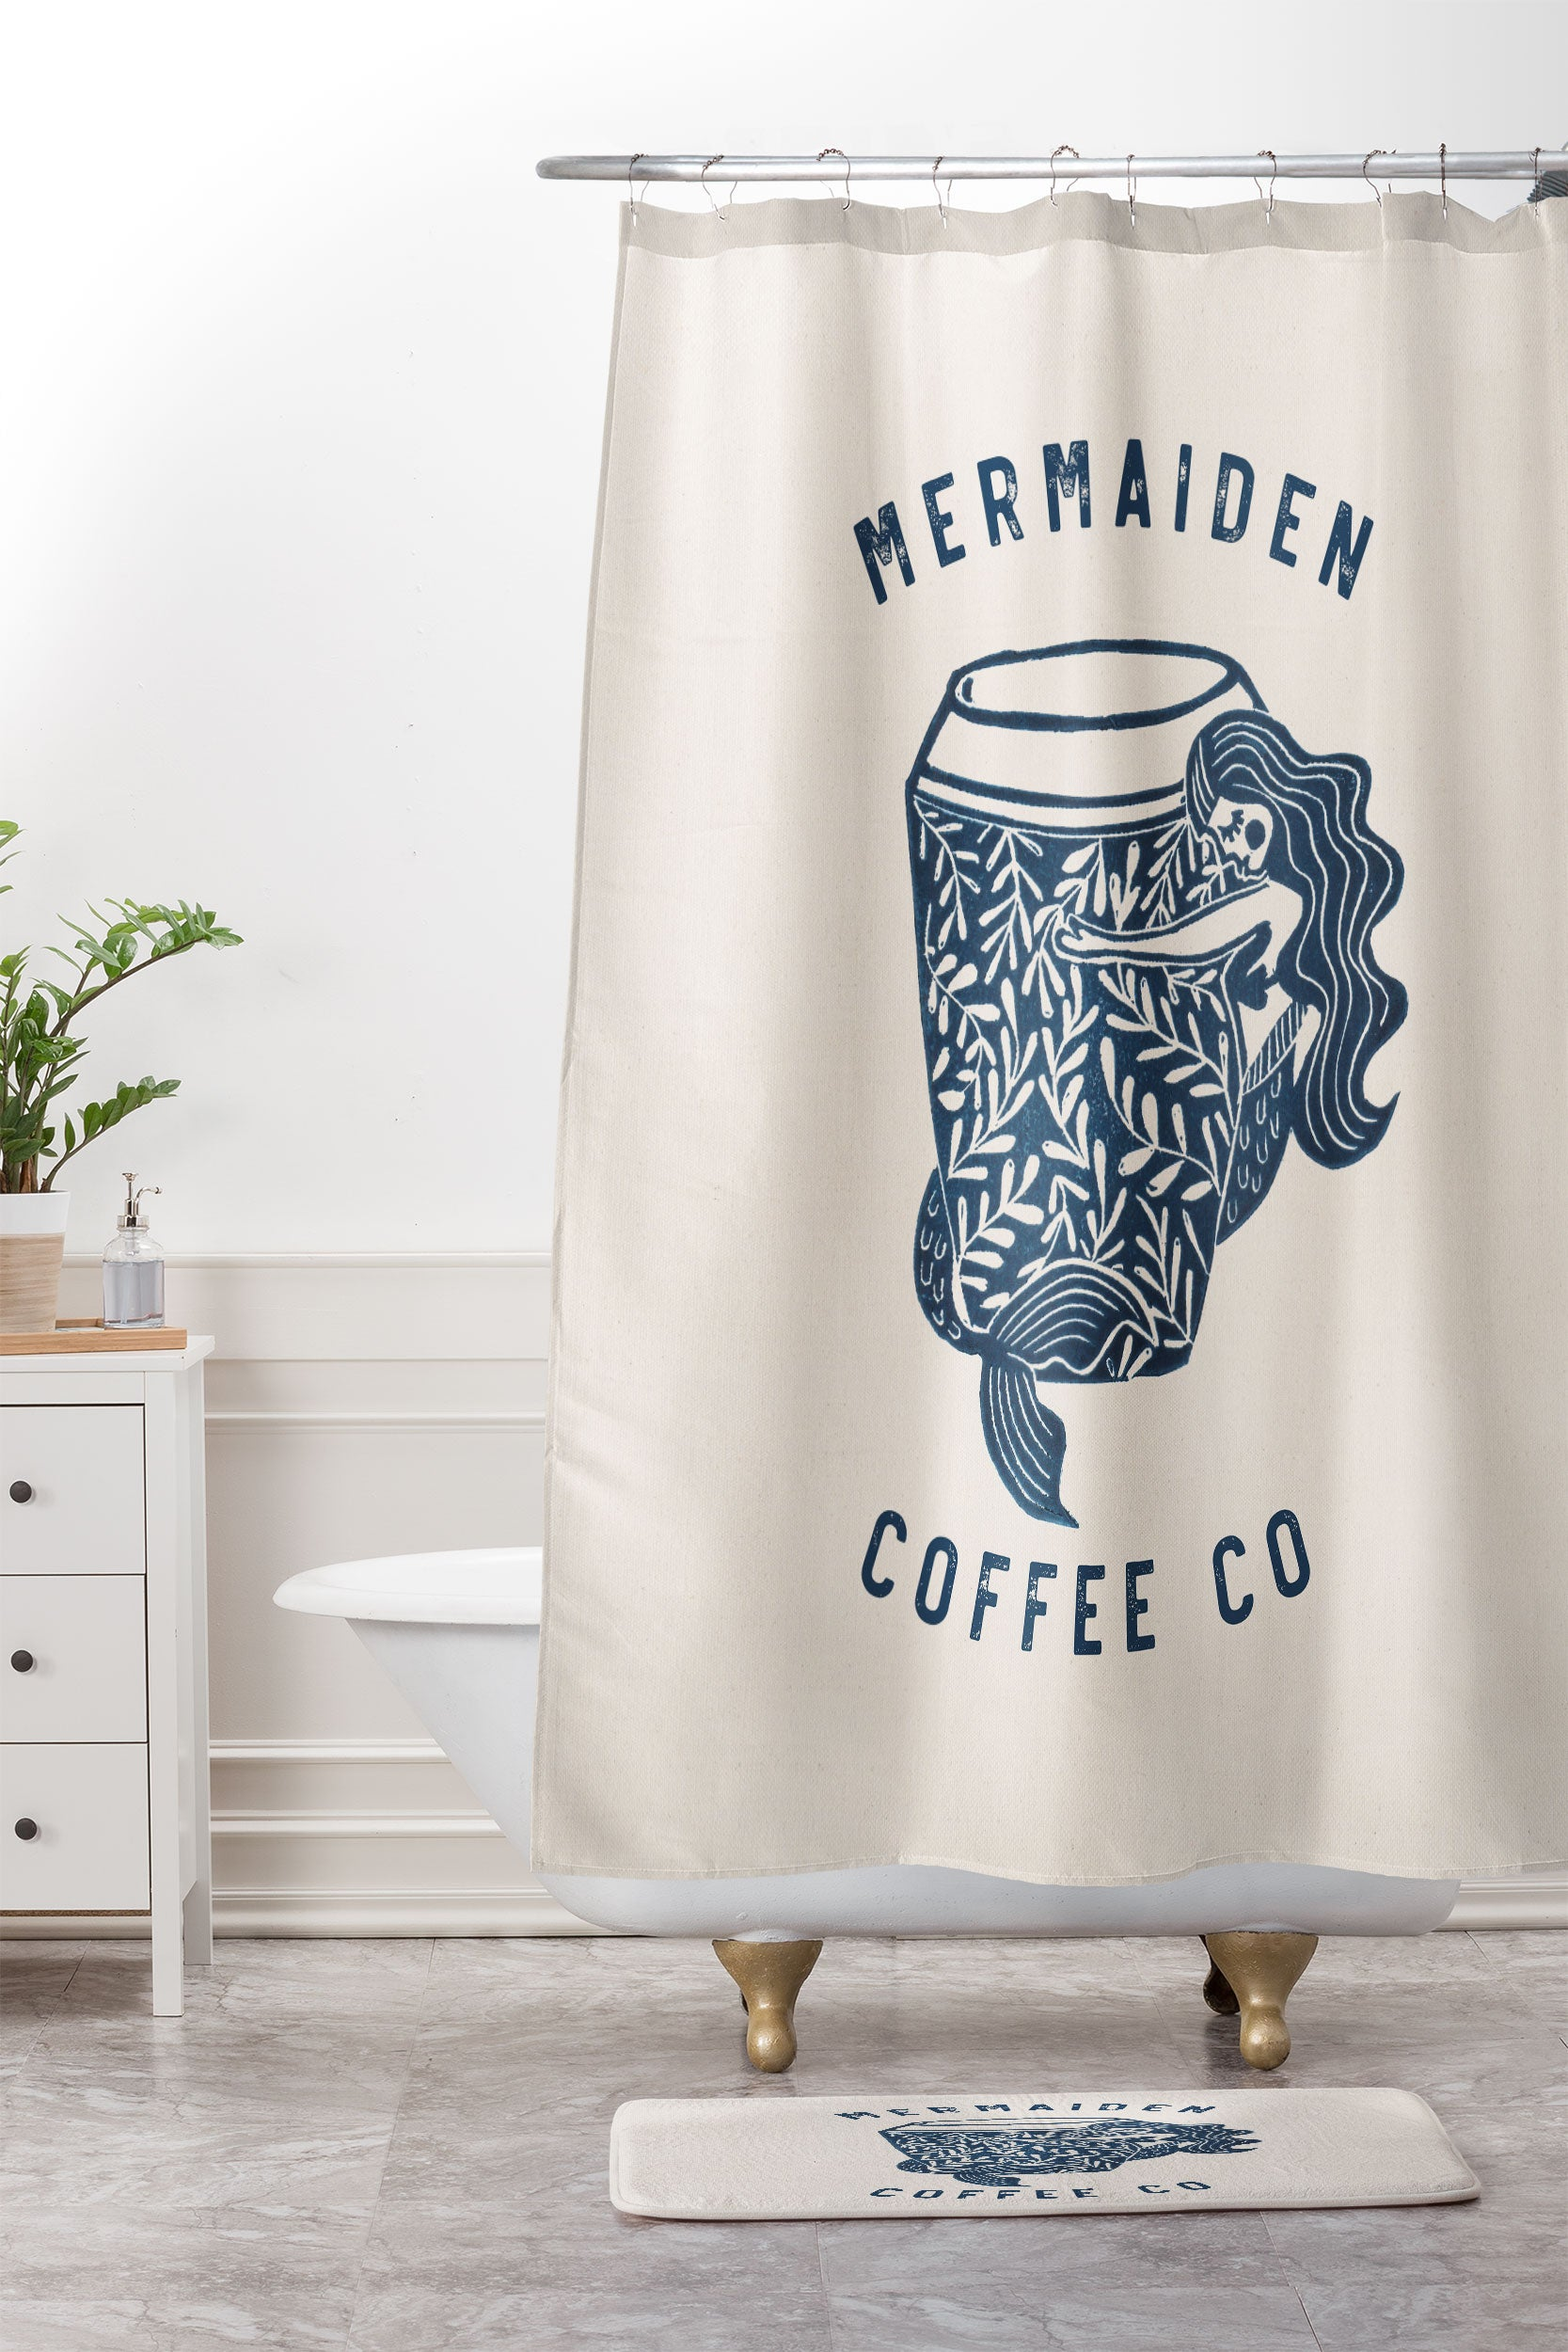 Dash And Ash Mermaiden Coffee Co Shower Curtain Mat